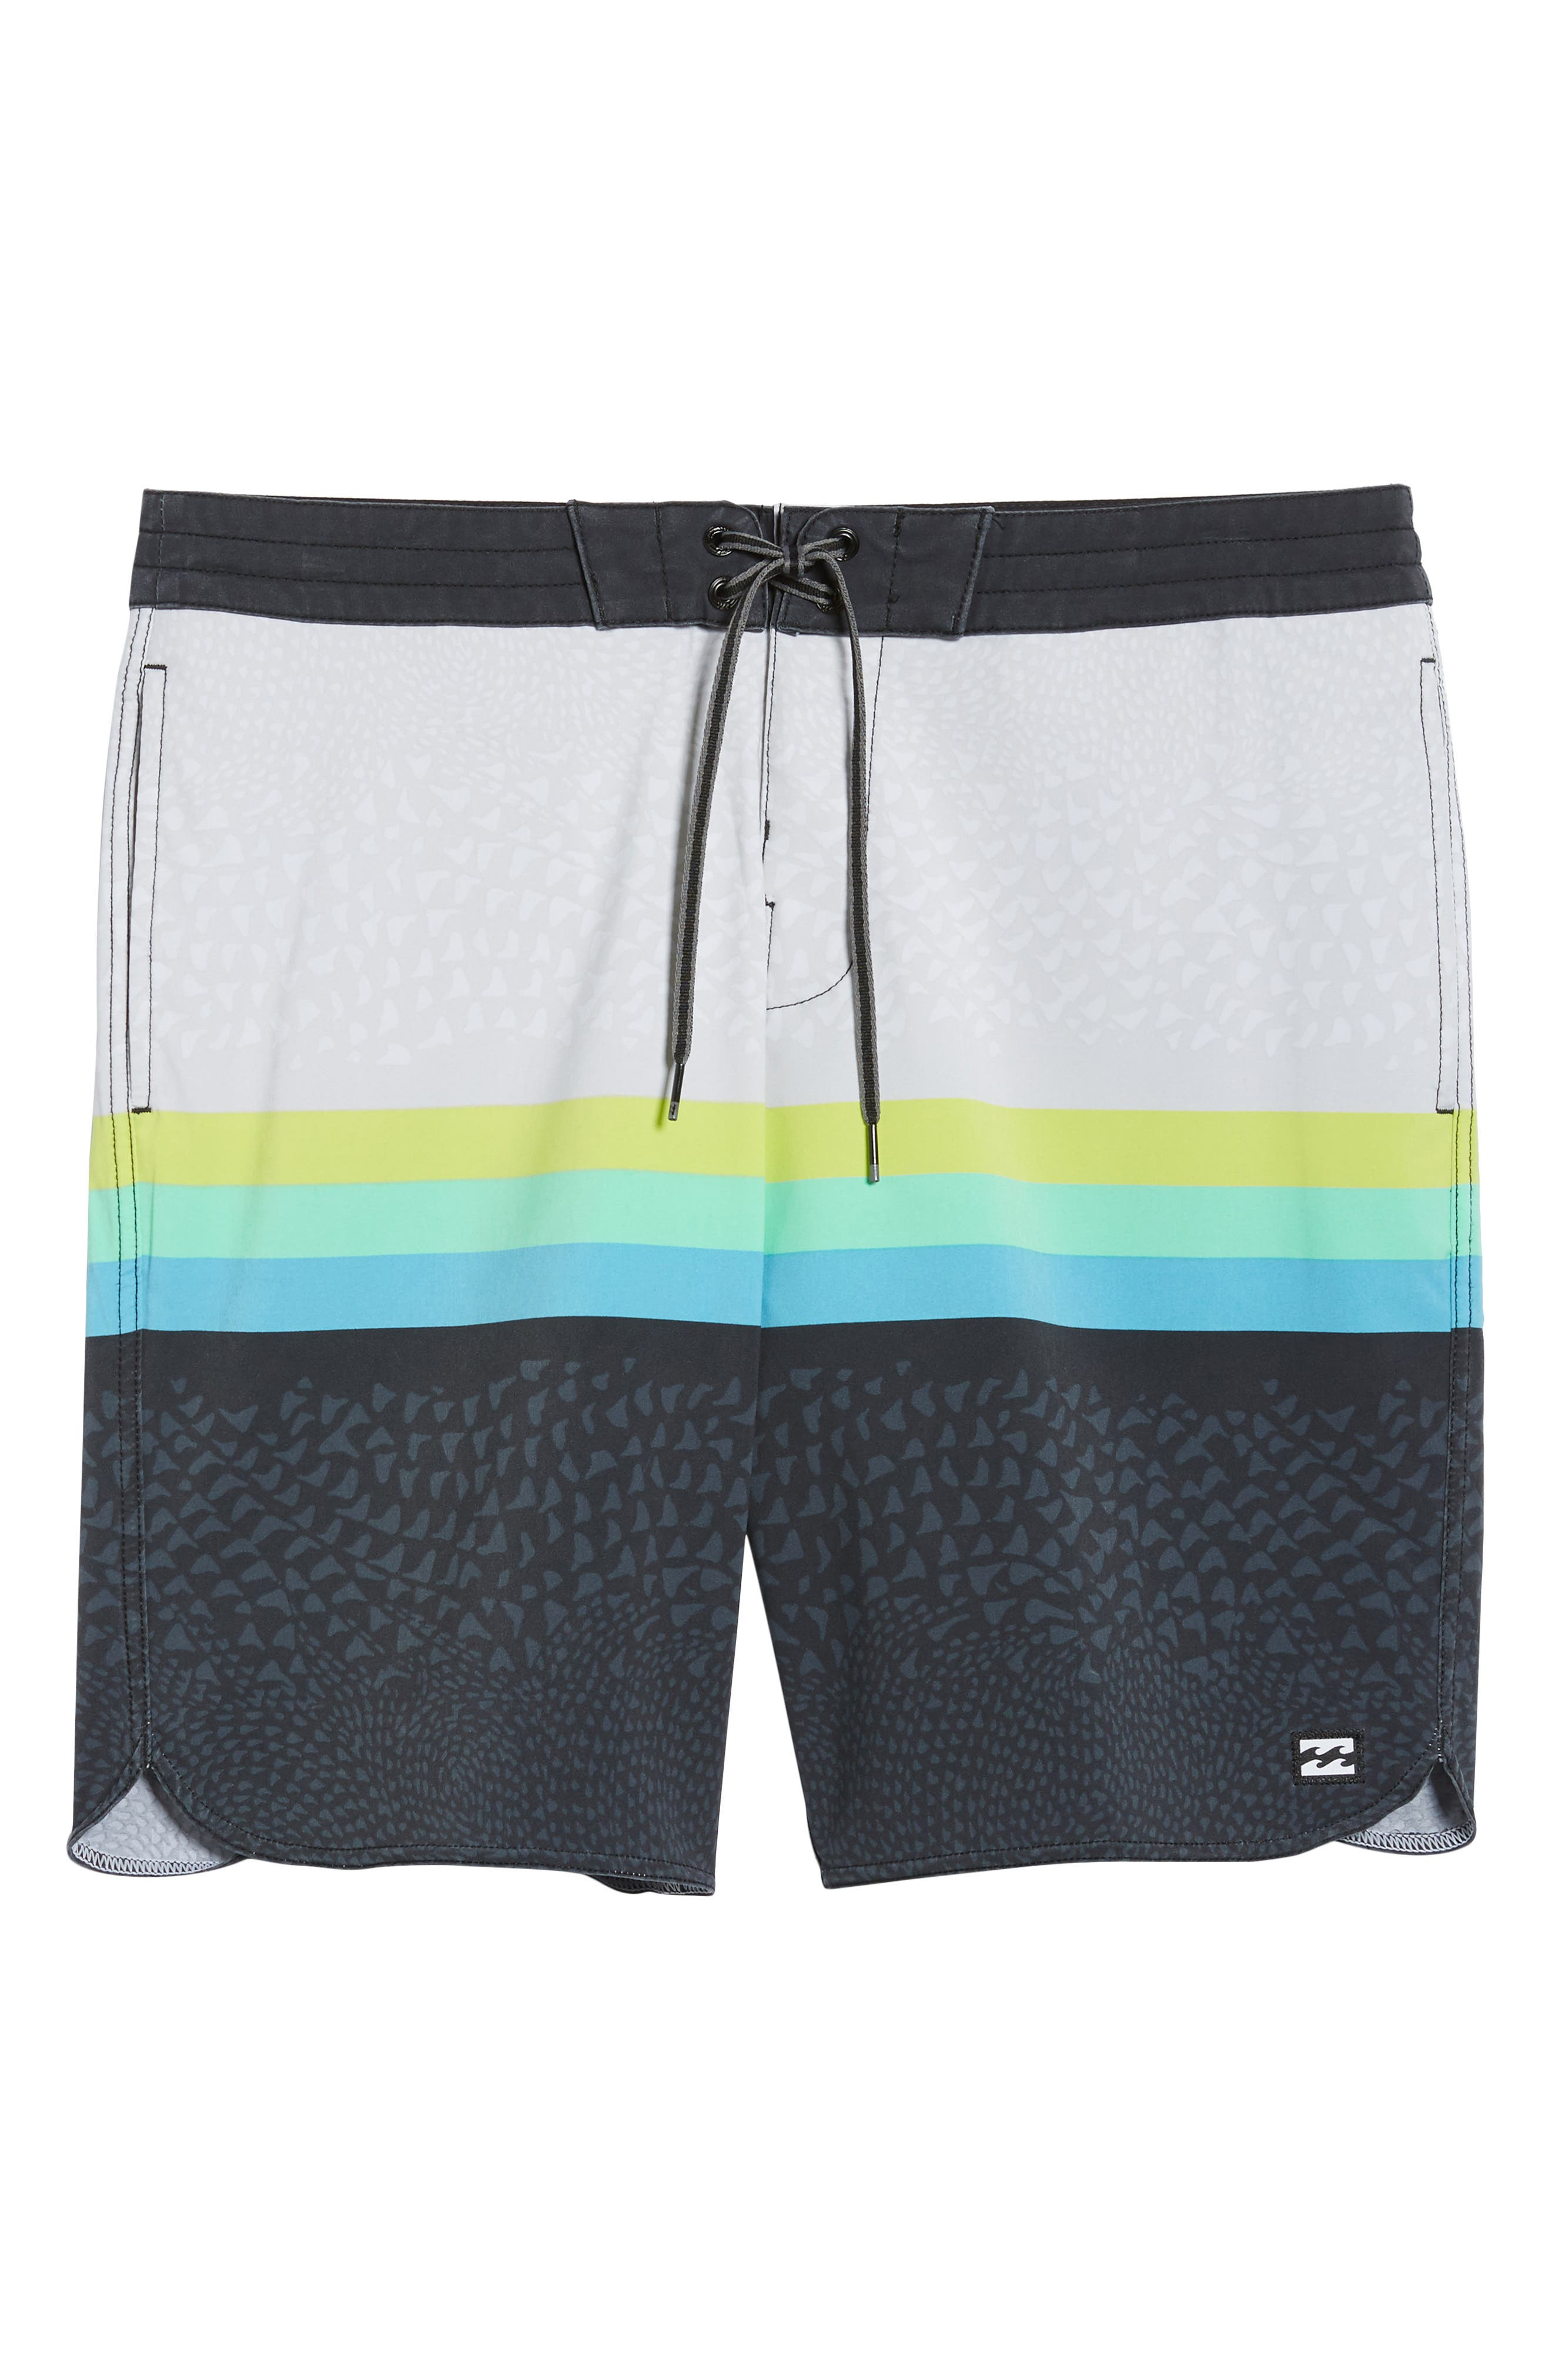 Fifty50 Low Tide Swim Trunks,                             Alternate thumbnail 27, color,